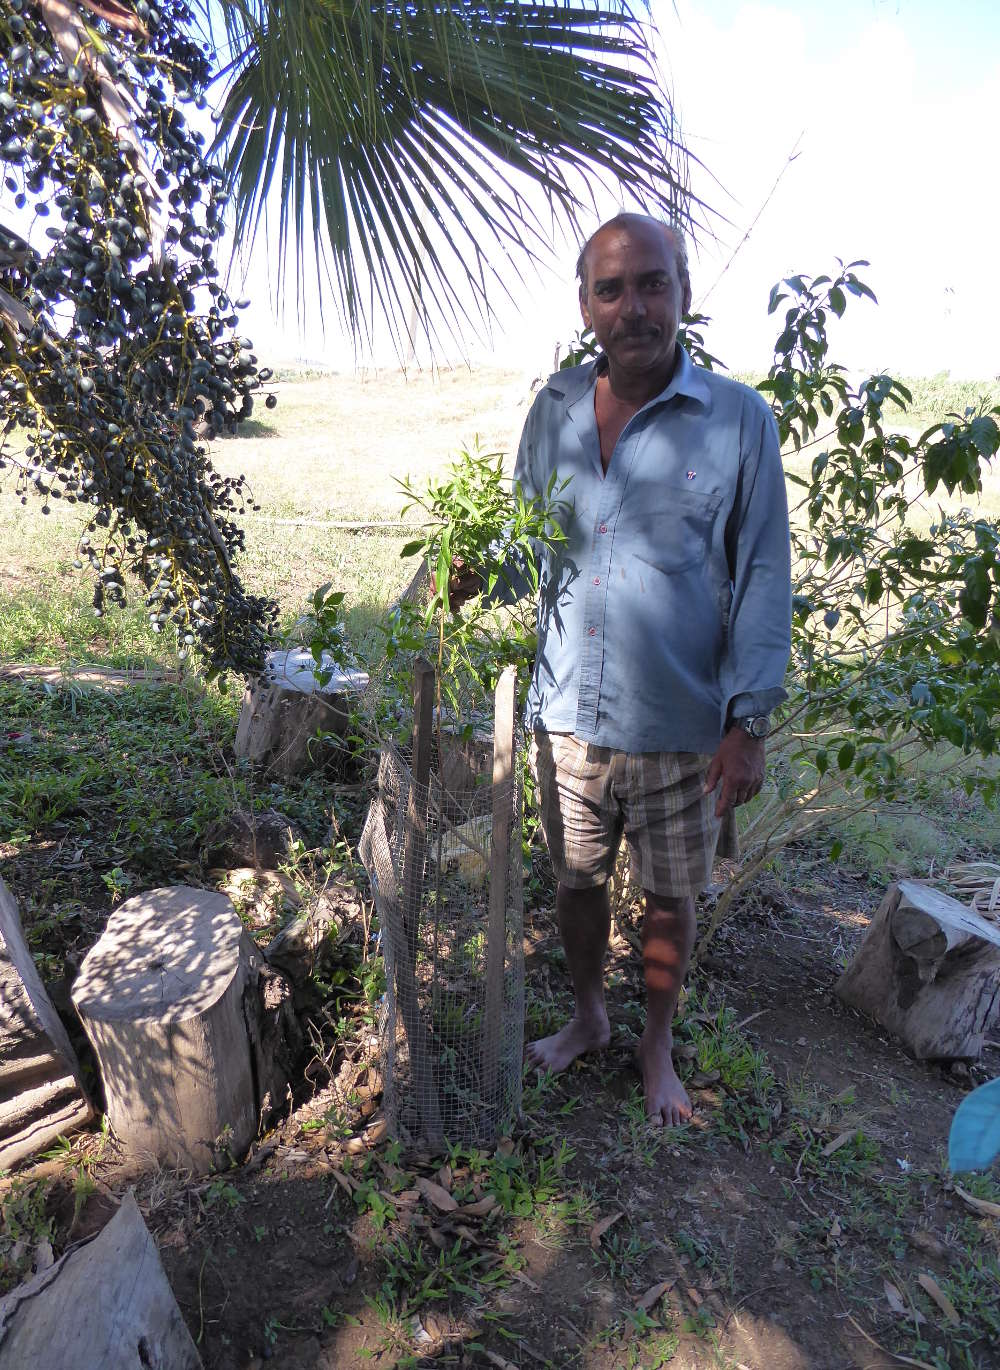 Prakash Chand proudly showing one of his exceptionally tall Yasi (sandalwood) saplings